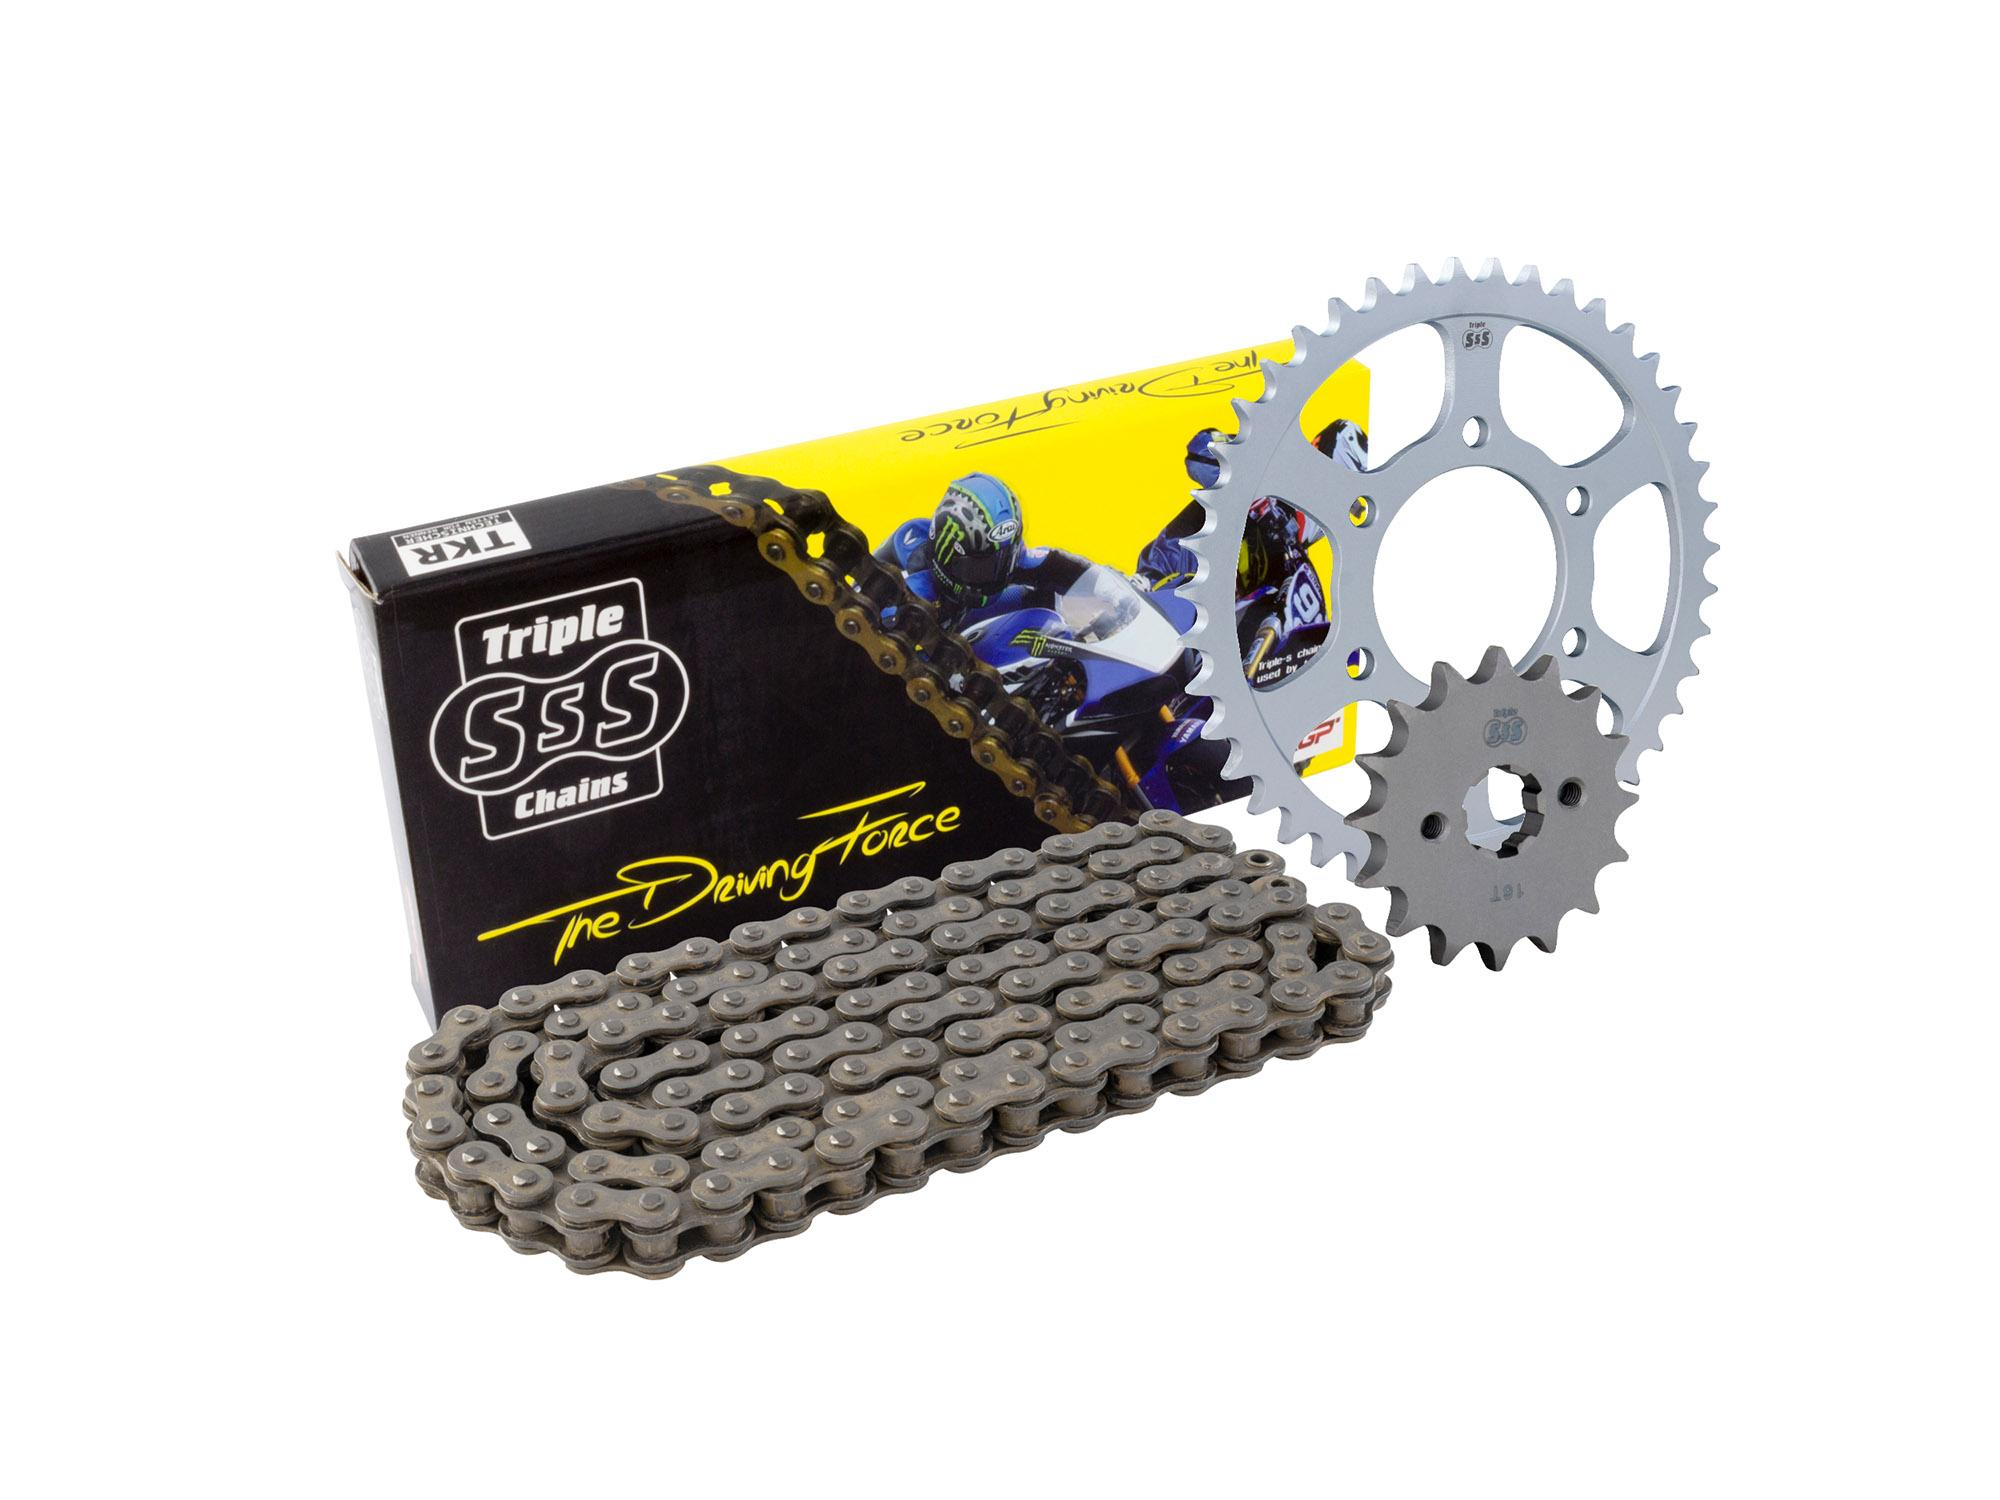 Kawasaki ZXR400 H2/L1-L9 88-02 Chain & Sprocket Kit: 15T Front, 45T Rear, HD O-Ring Black Chain 520H 110 Link